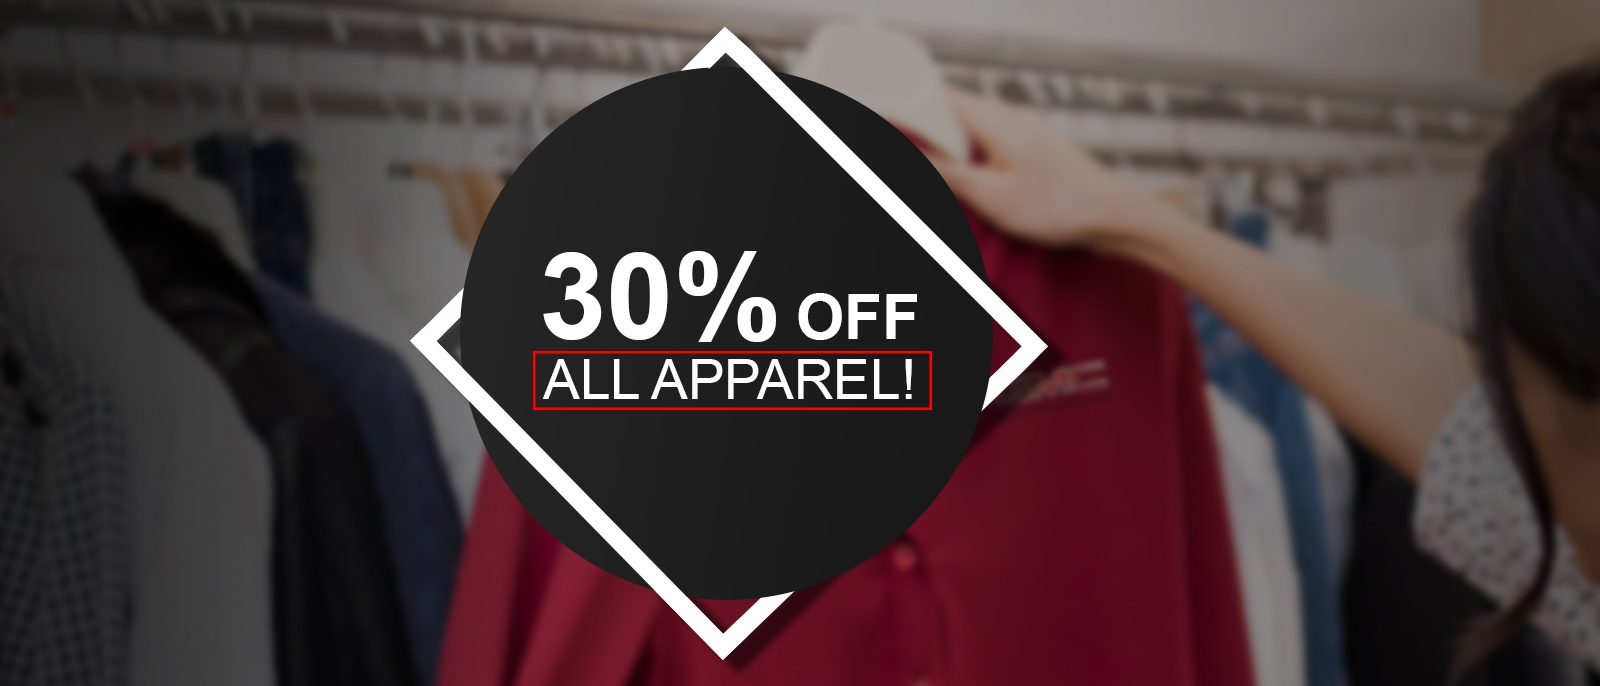 30% OFF ALL APPAREL!